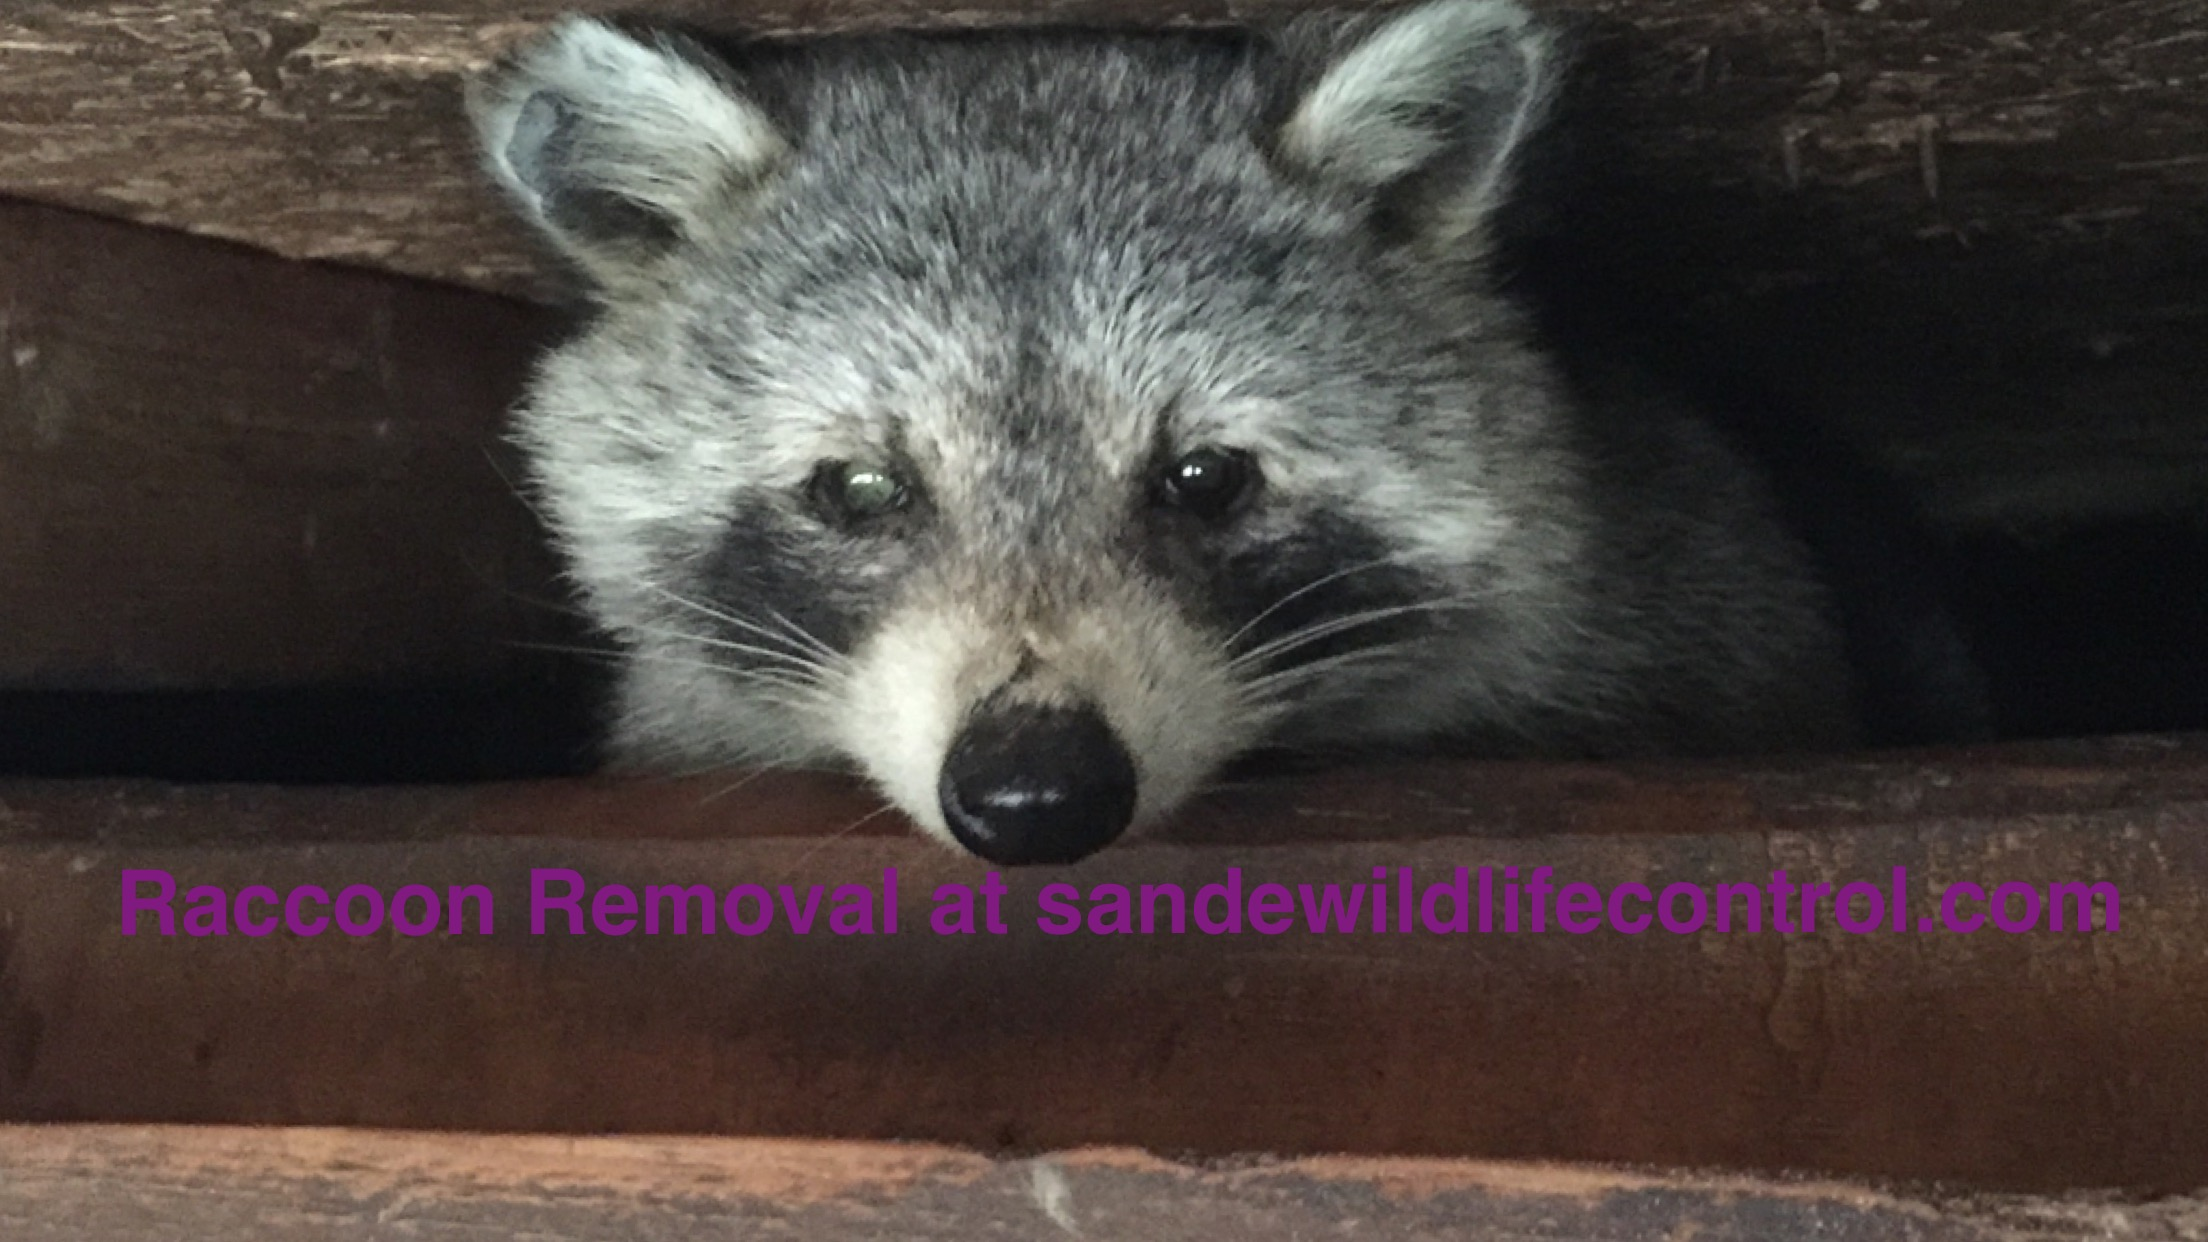 Raccoon Removal-Sande Wildlife Control